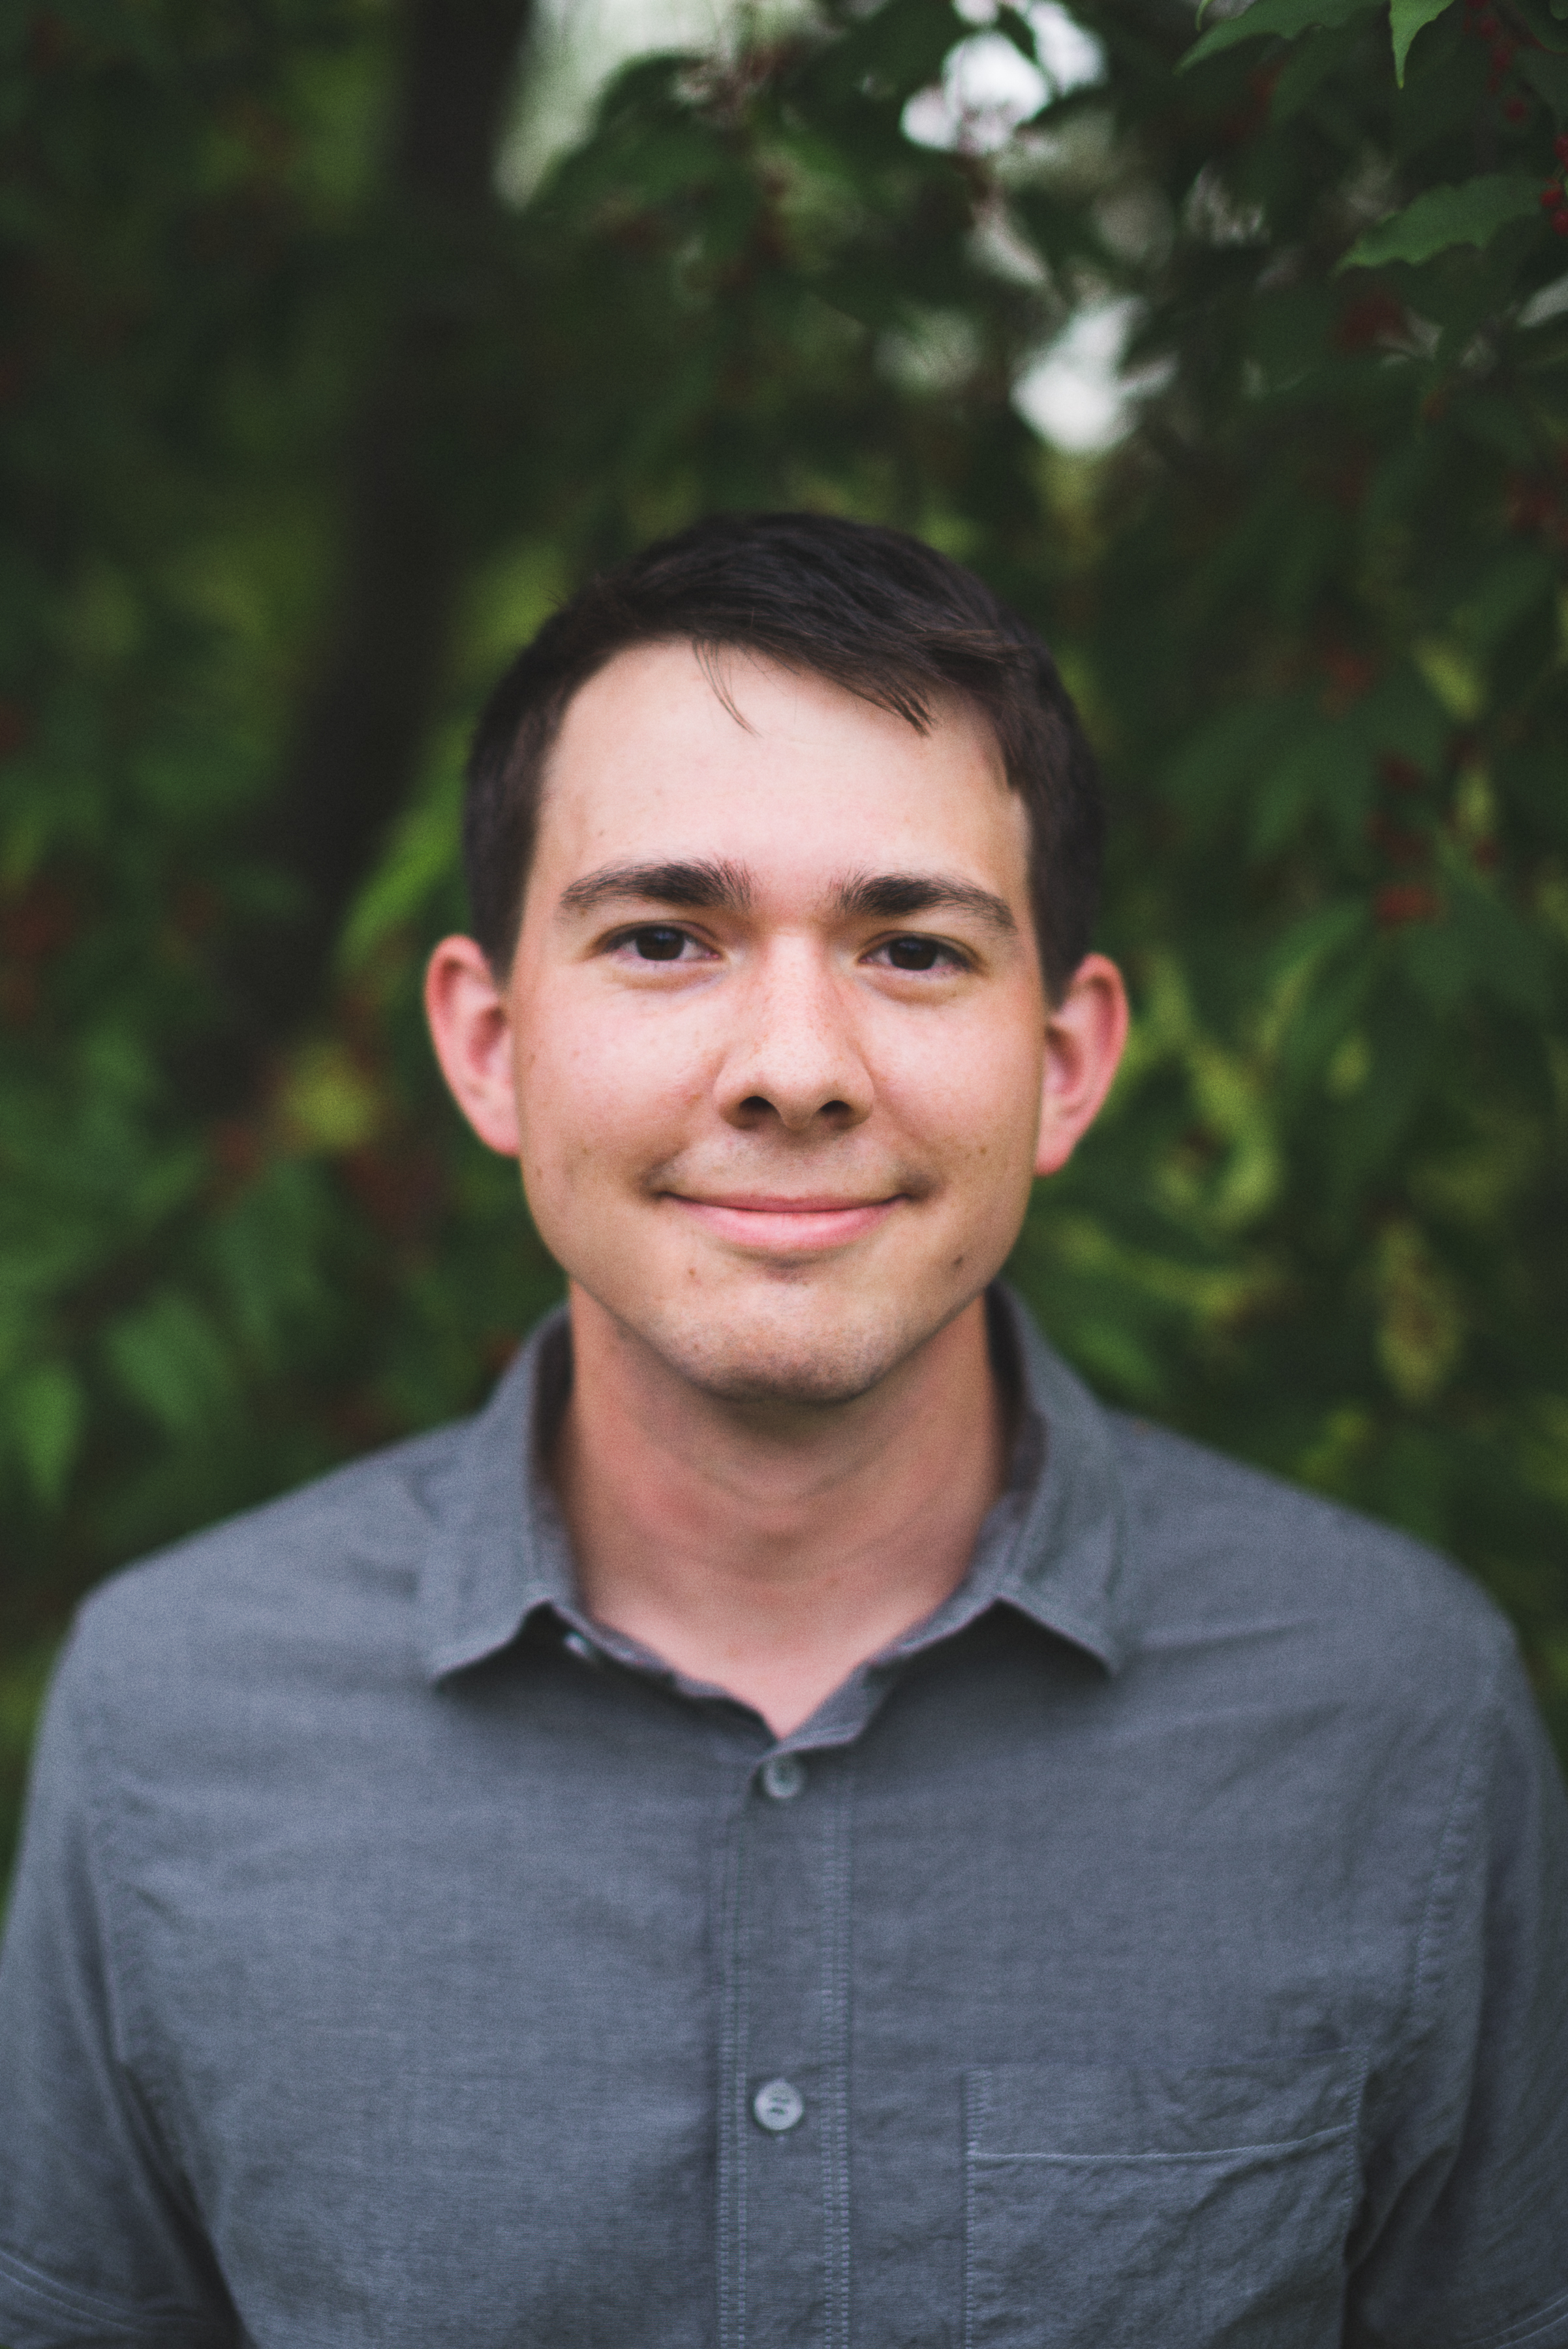 Justin Anderson - PhD Plant Breeding and Molecular Genetics - Dept of Agronomy and Plant Genetics - Subject Matter Expert from Kolabtree